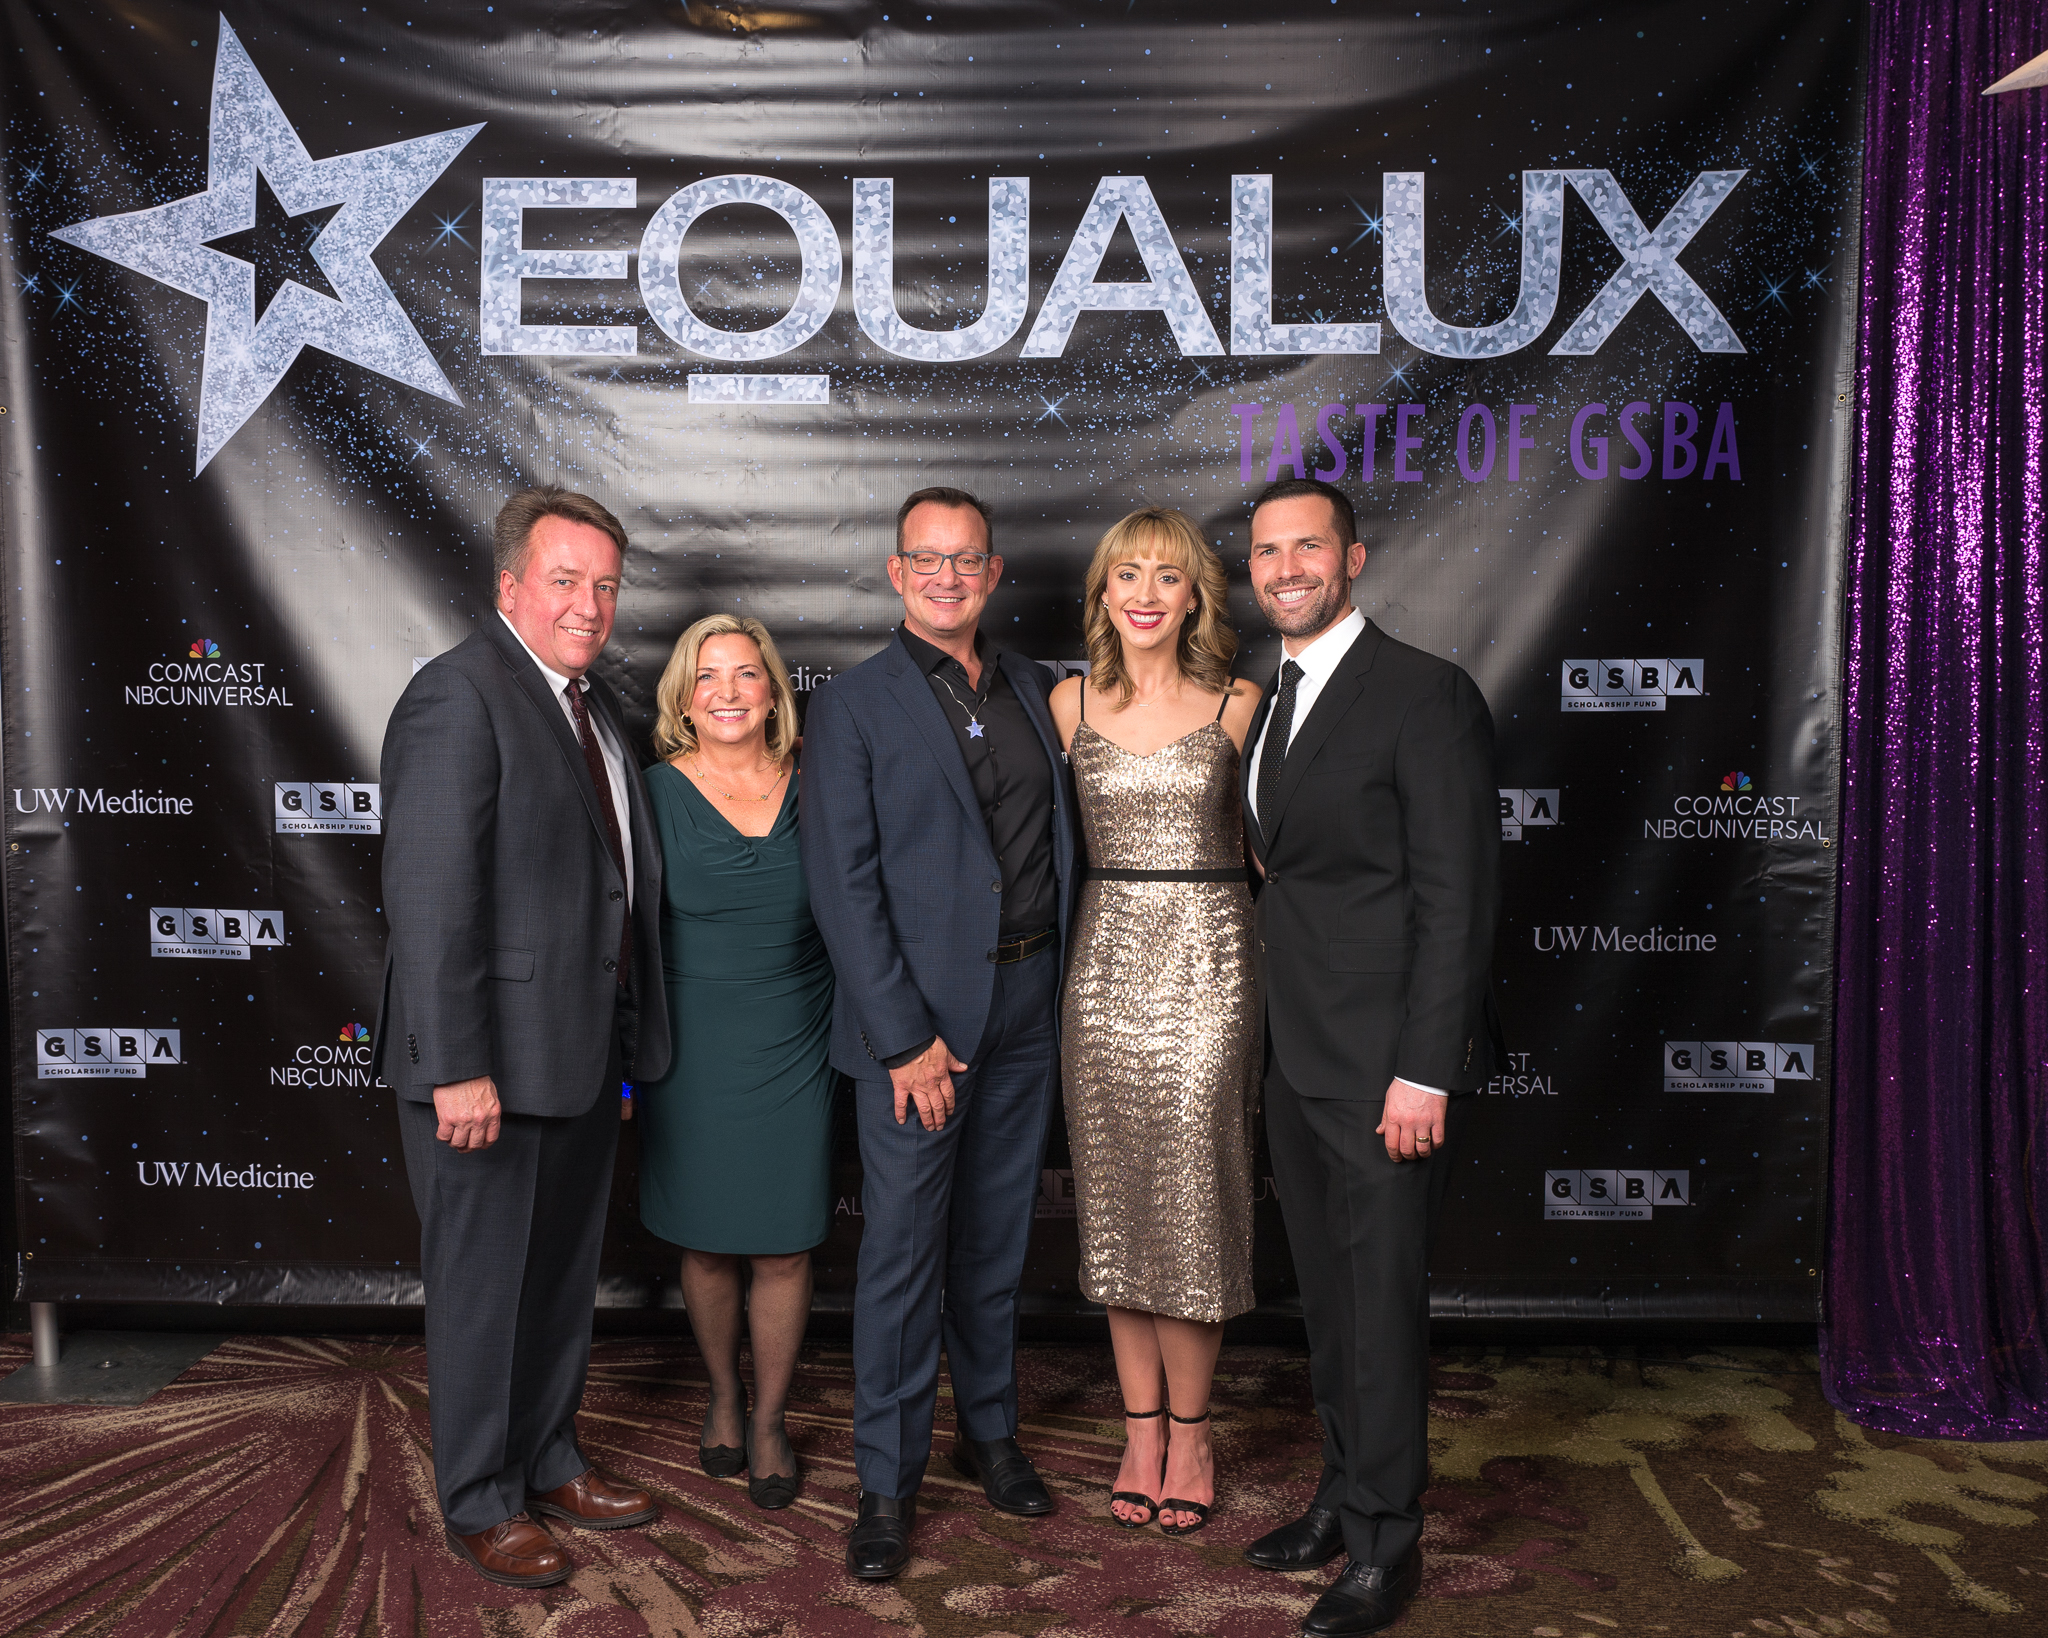 111718_GSBA EQUALUX at The Westin Seattle (Credit- Nate Gowdy)-189.jpg